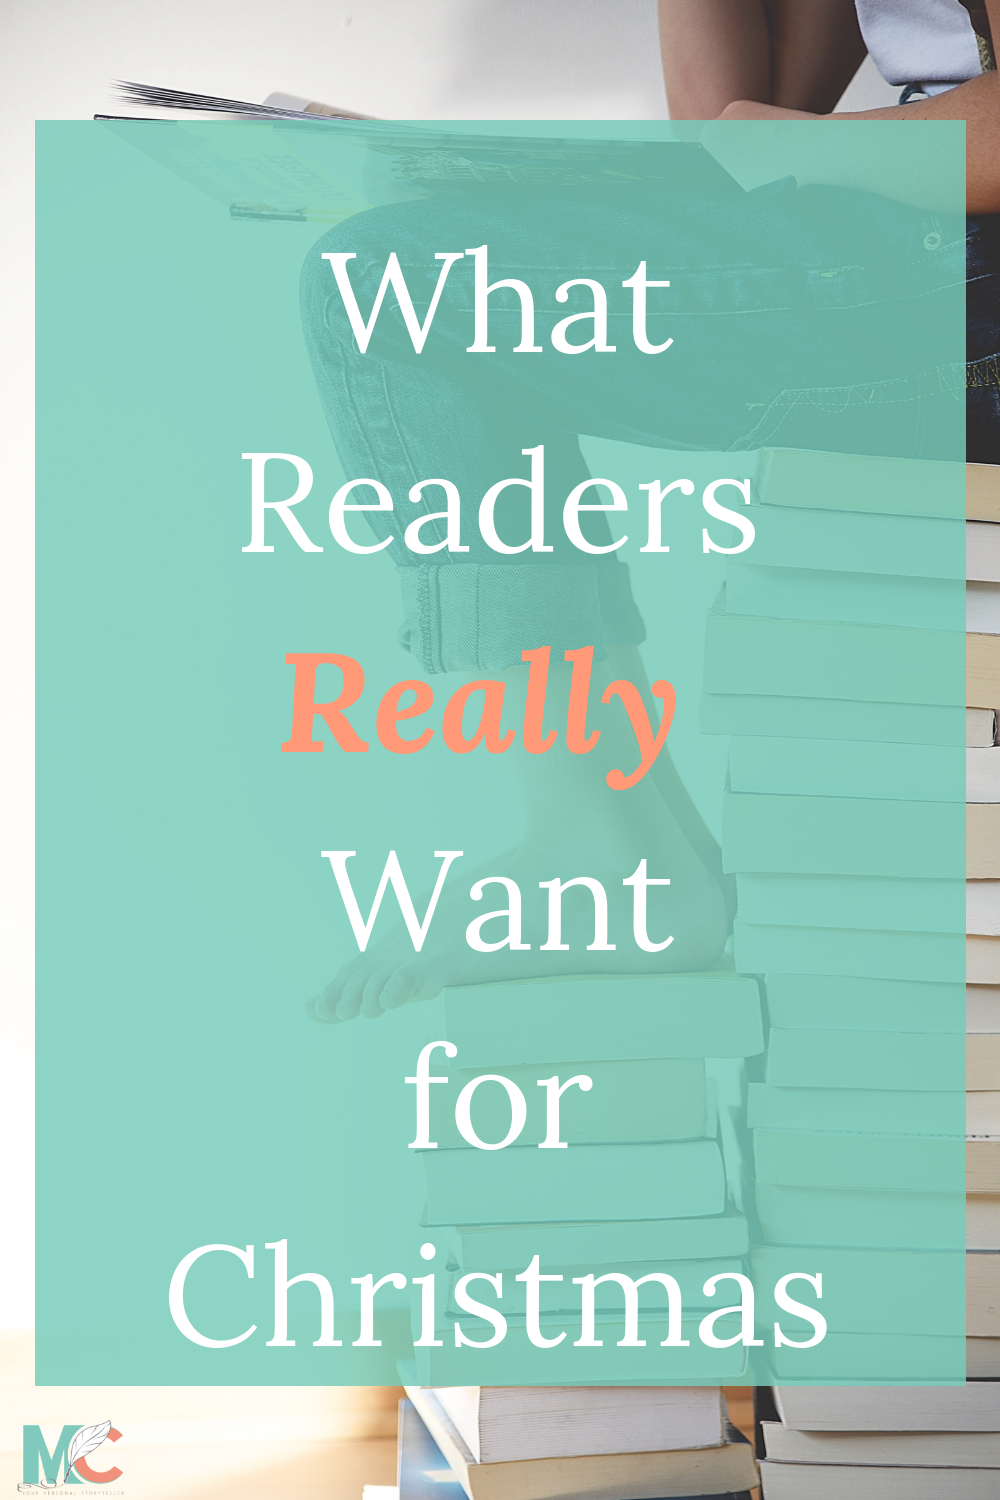 Looking for the perfect gift for the reader in your life? Read the blog to find out what every reader really wants for Christmas. Hint: It's NOT a book!